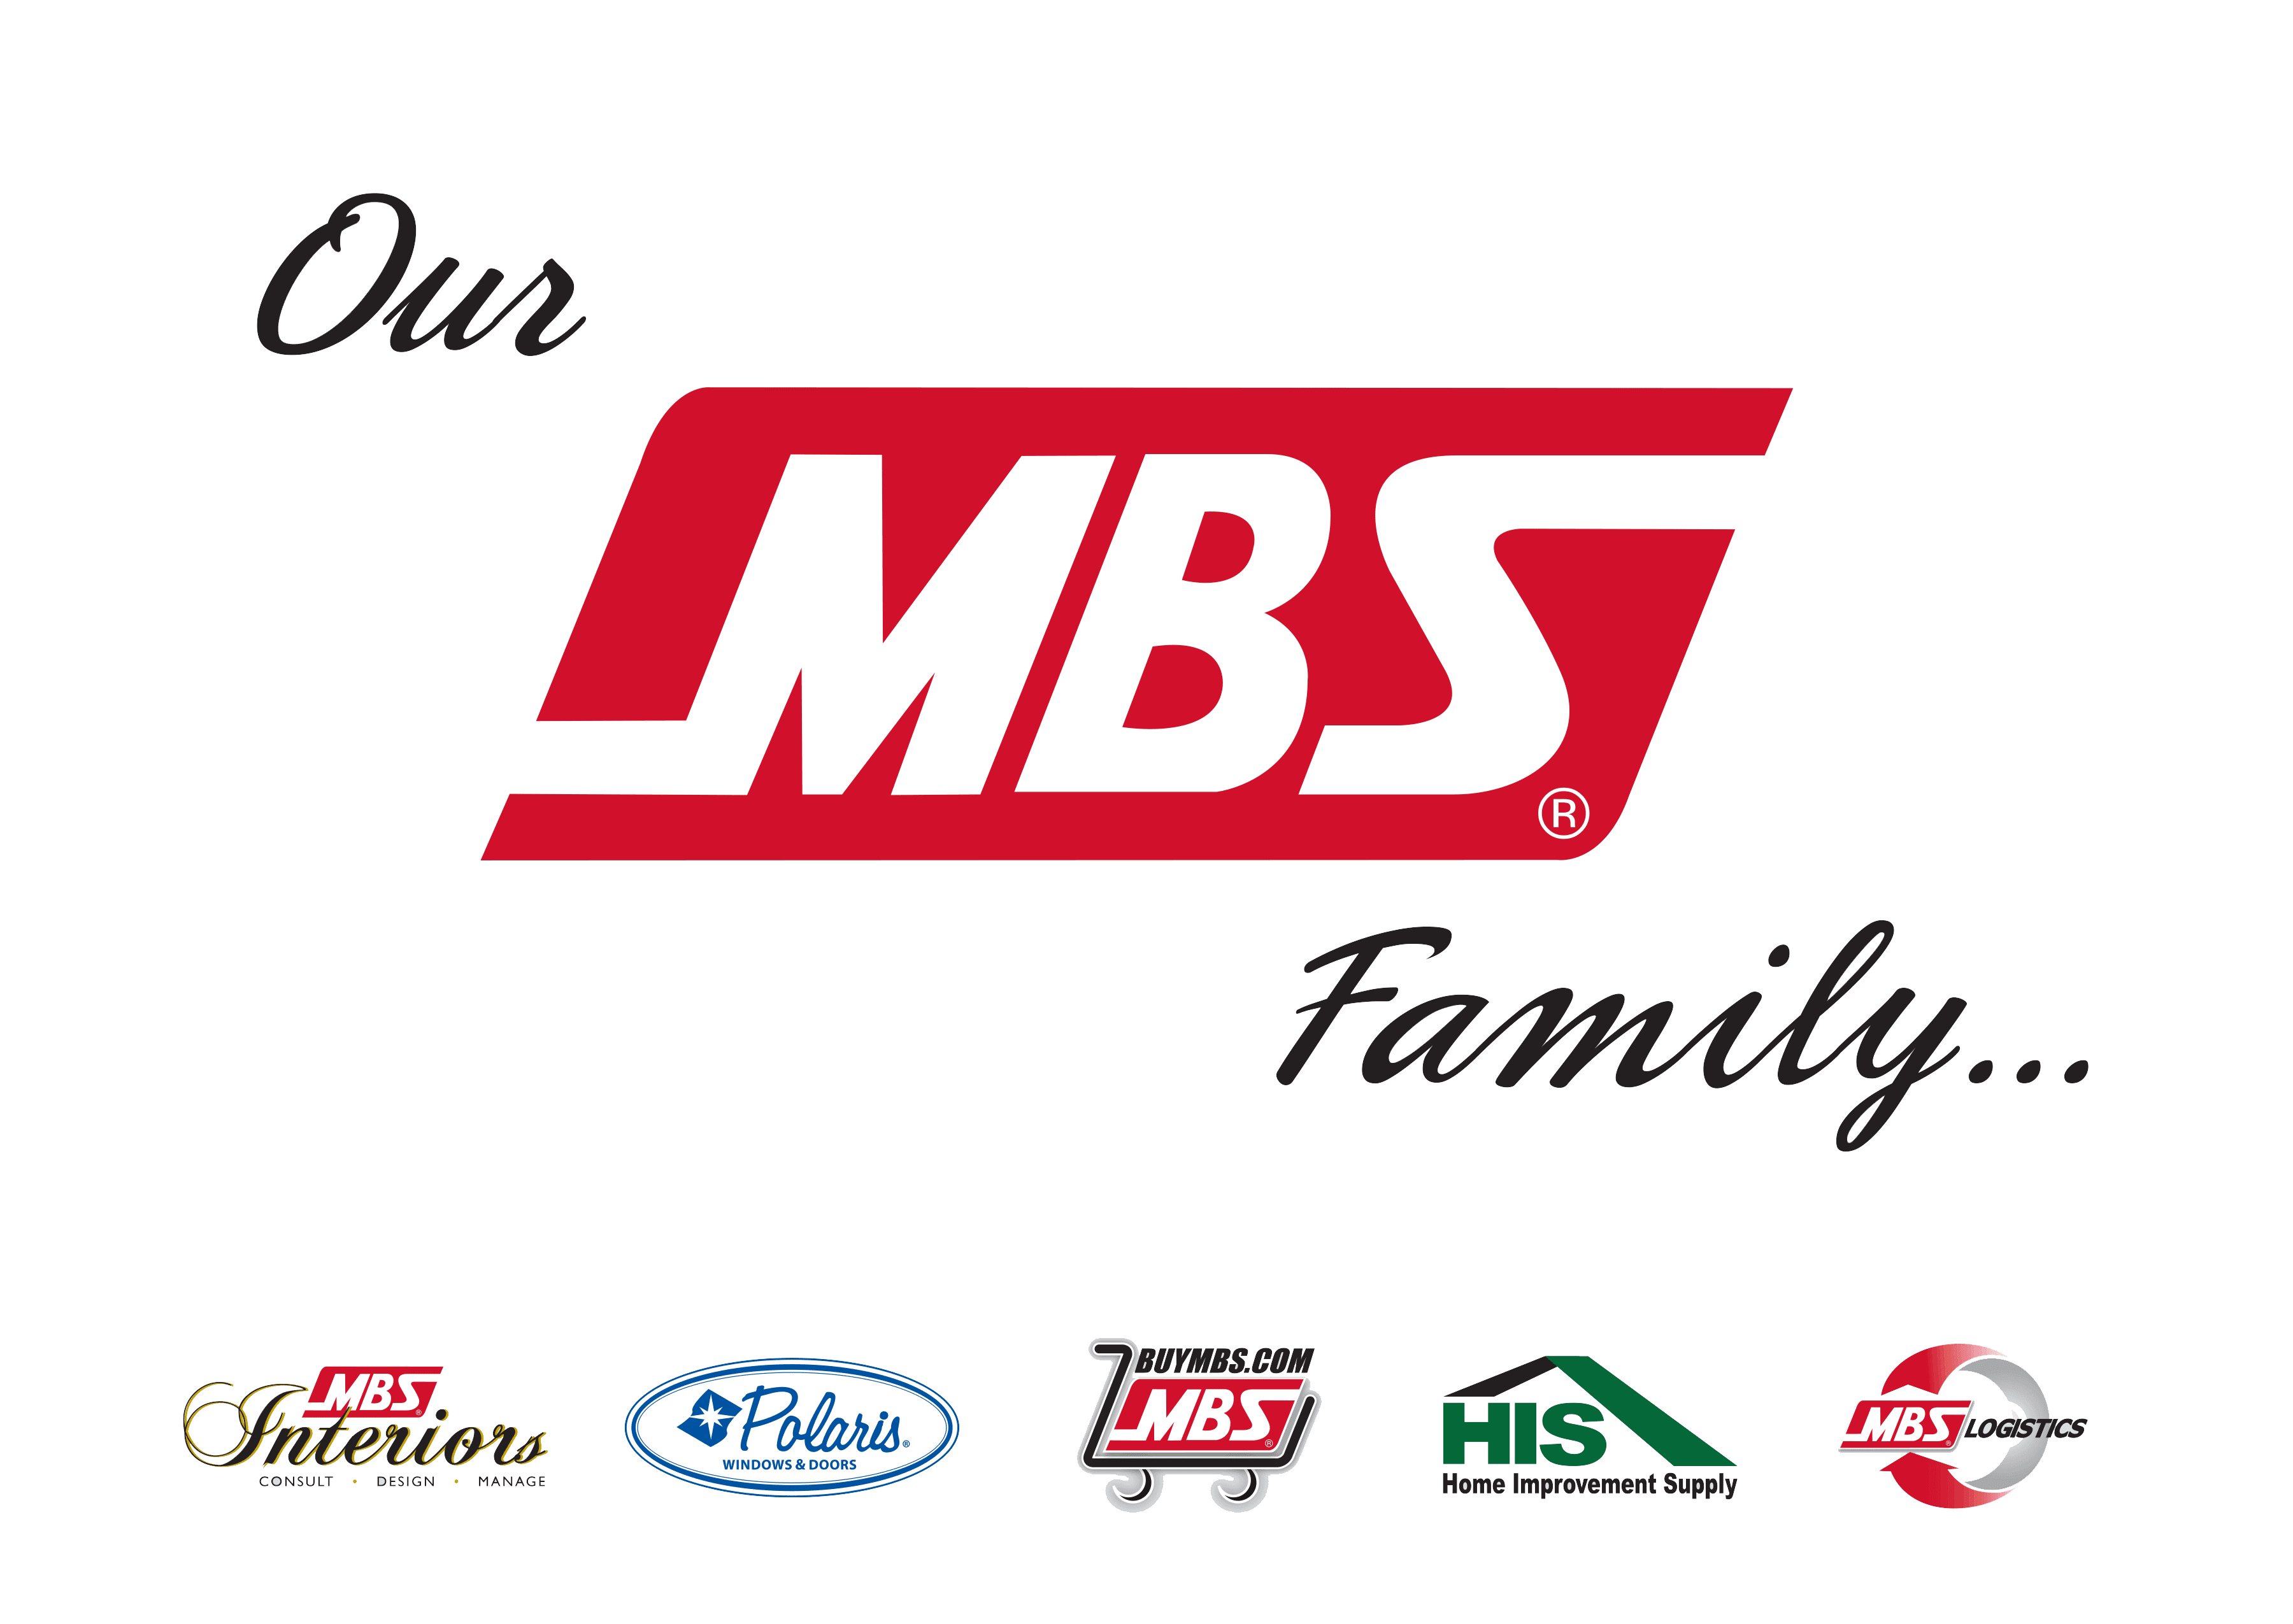 MBS is a family of companies